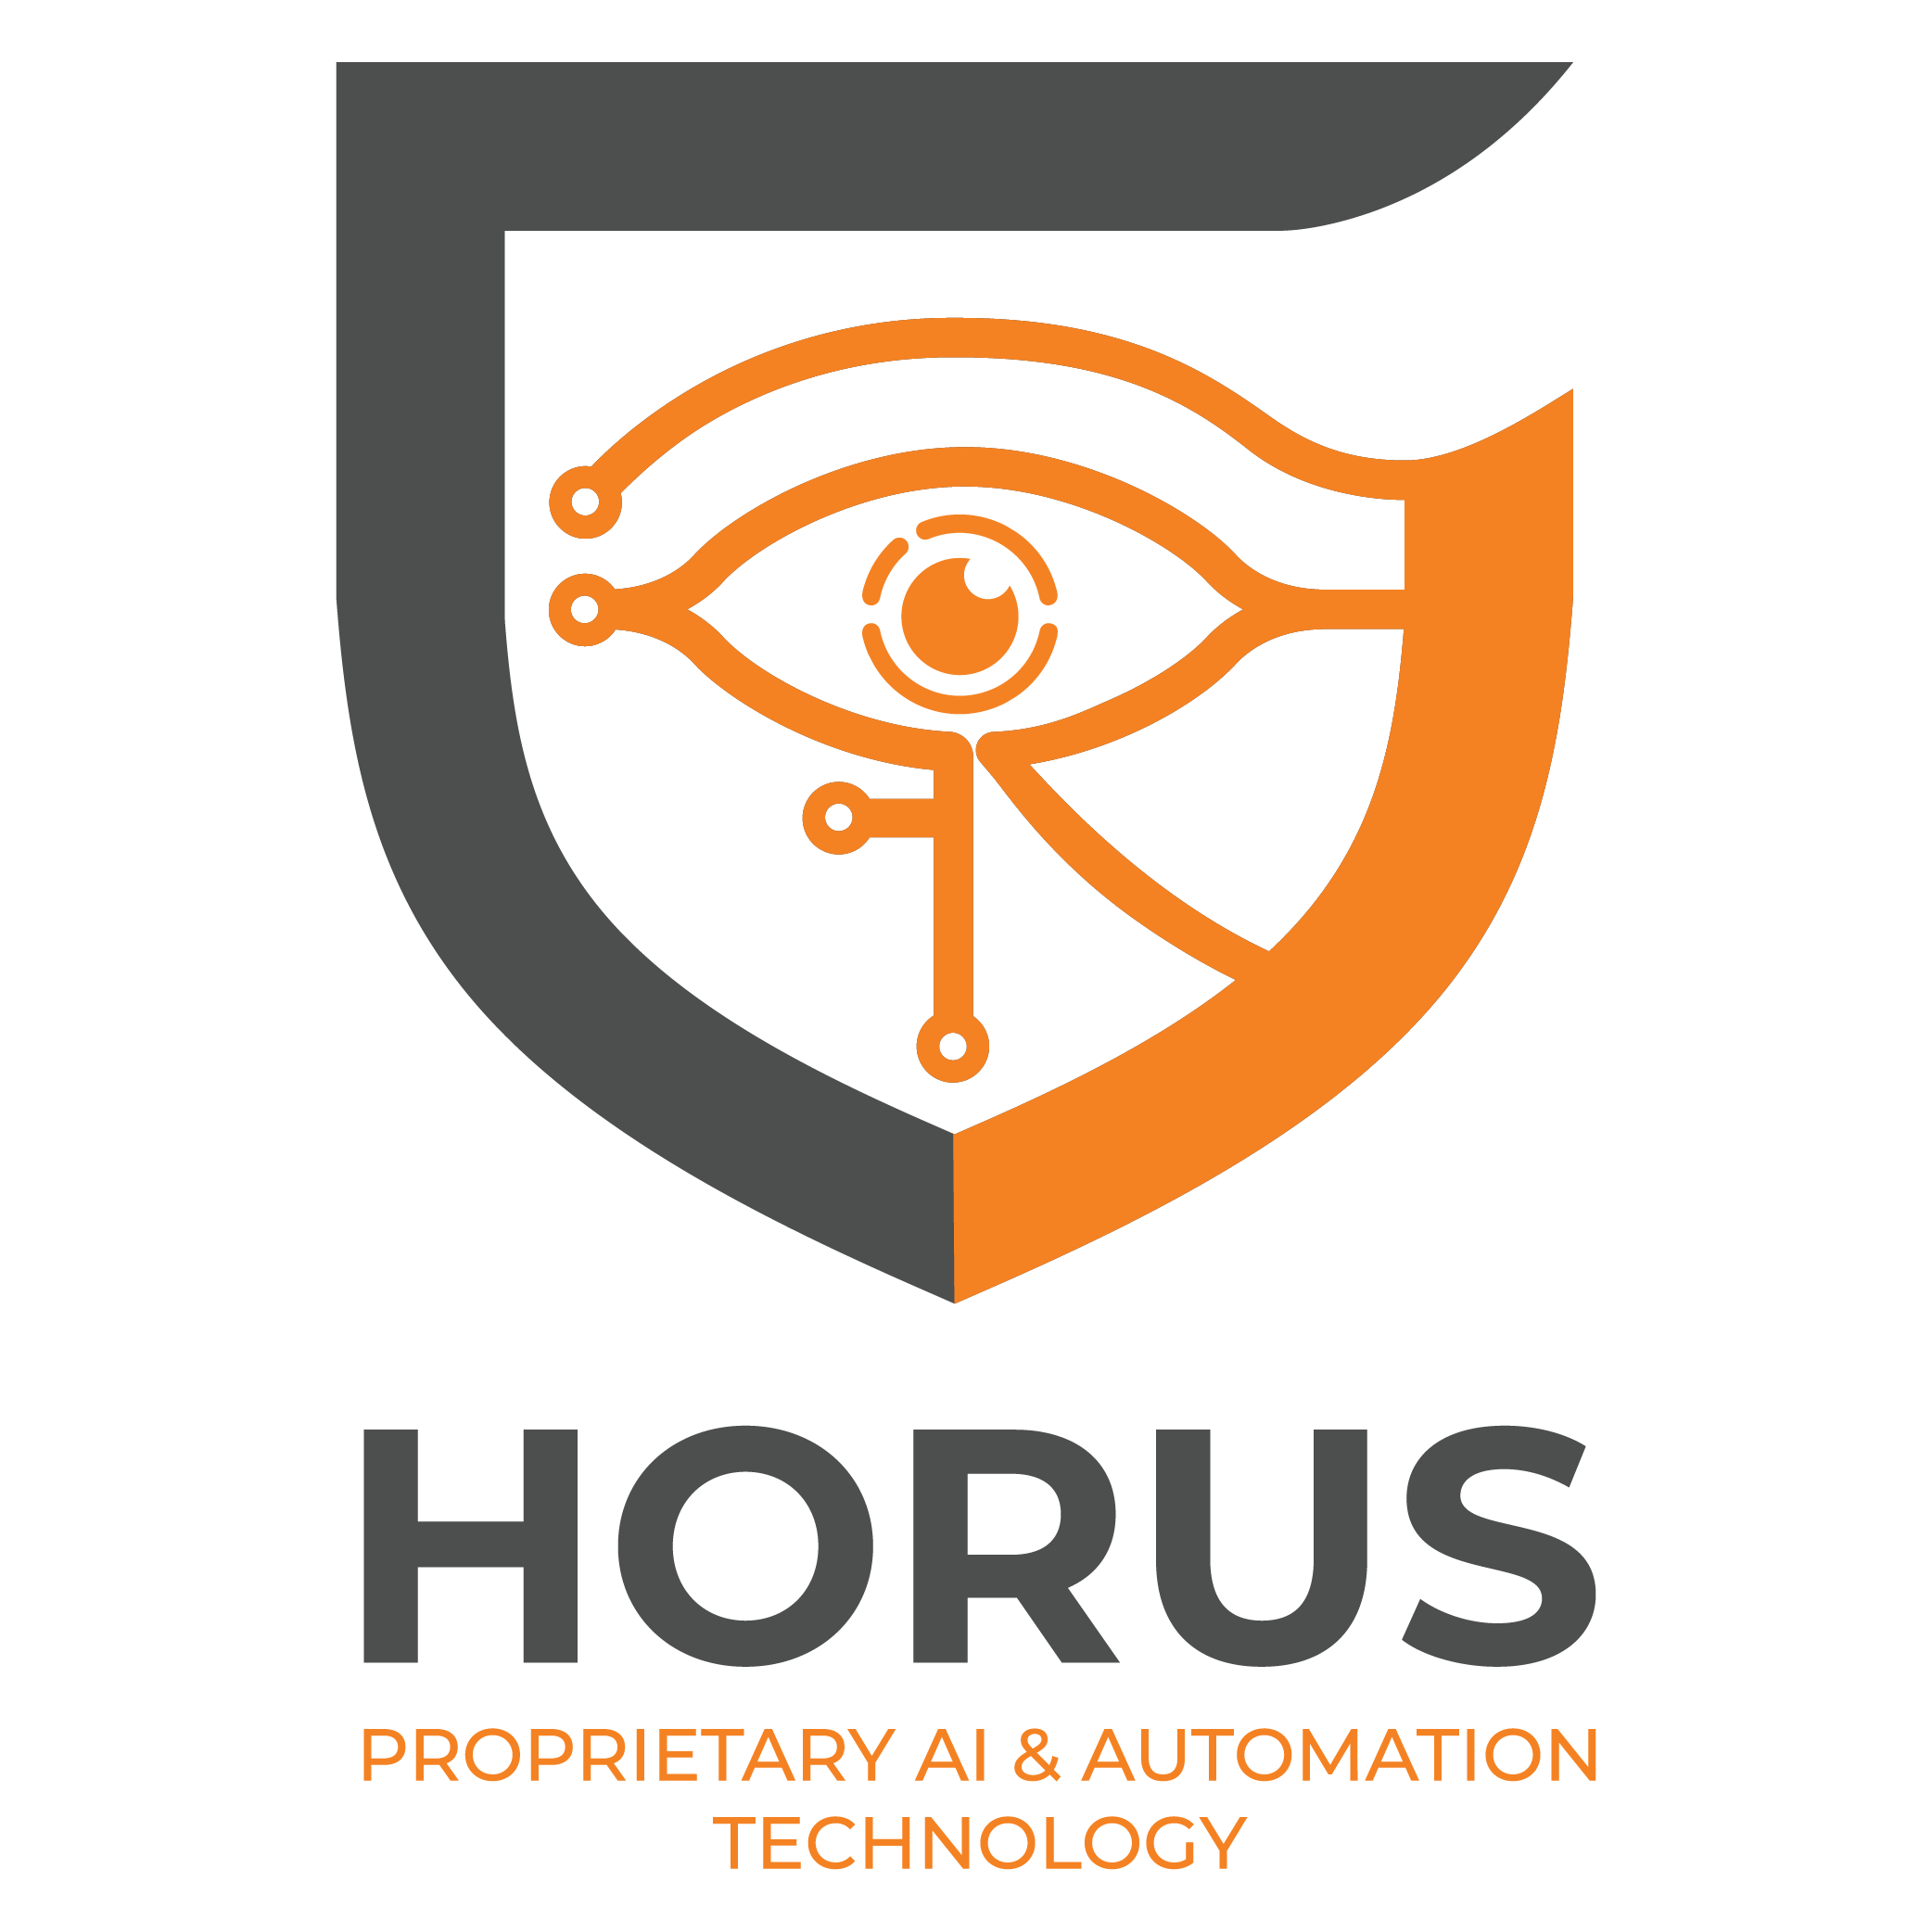 UNPARALLED TECHNOLOGY DRIVES OUR PROCESS. - Gray Falkon's proprietary AI and automation technology defends our customers while combatting illegitimate sellers. We use HORUS to eliminate up to 86% of illegitimate sellers by simultaneously pursuing two channels that are critical to eradicating products from the gray market.